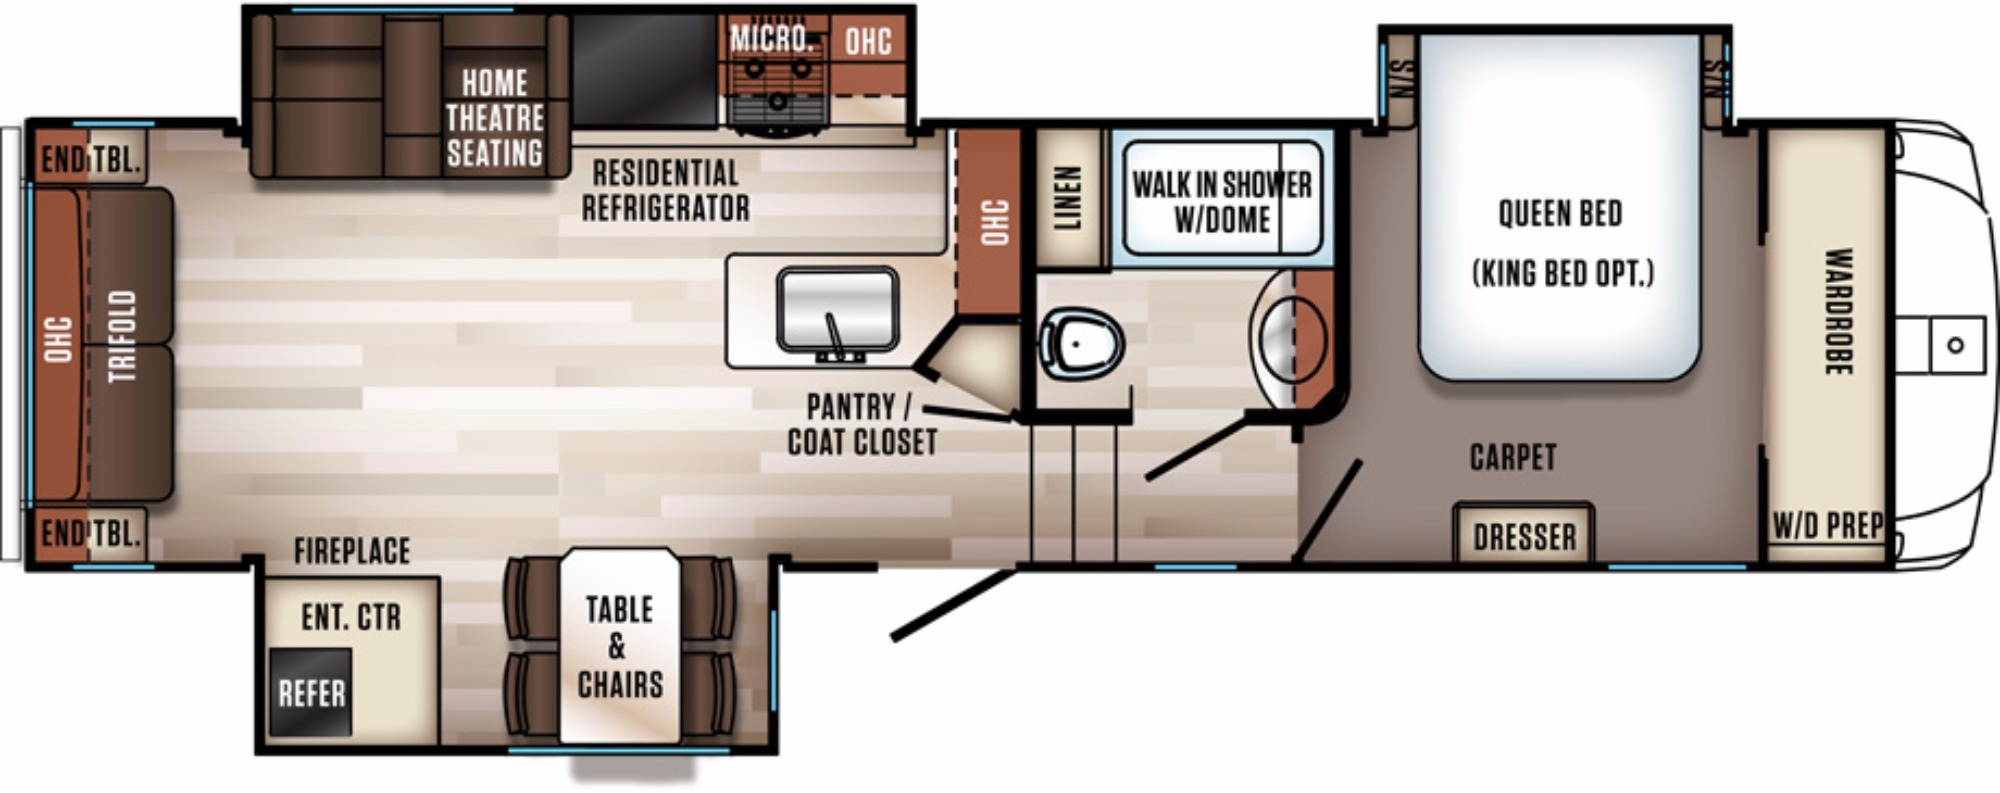 View Floor Plan for 2018 FOREST RIVER SABRE 30RLT